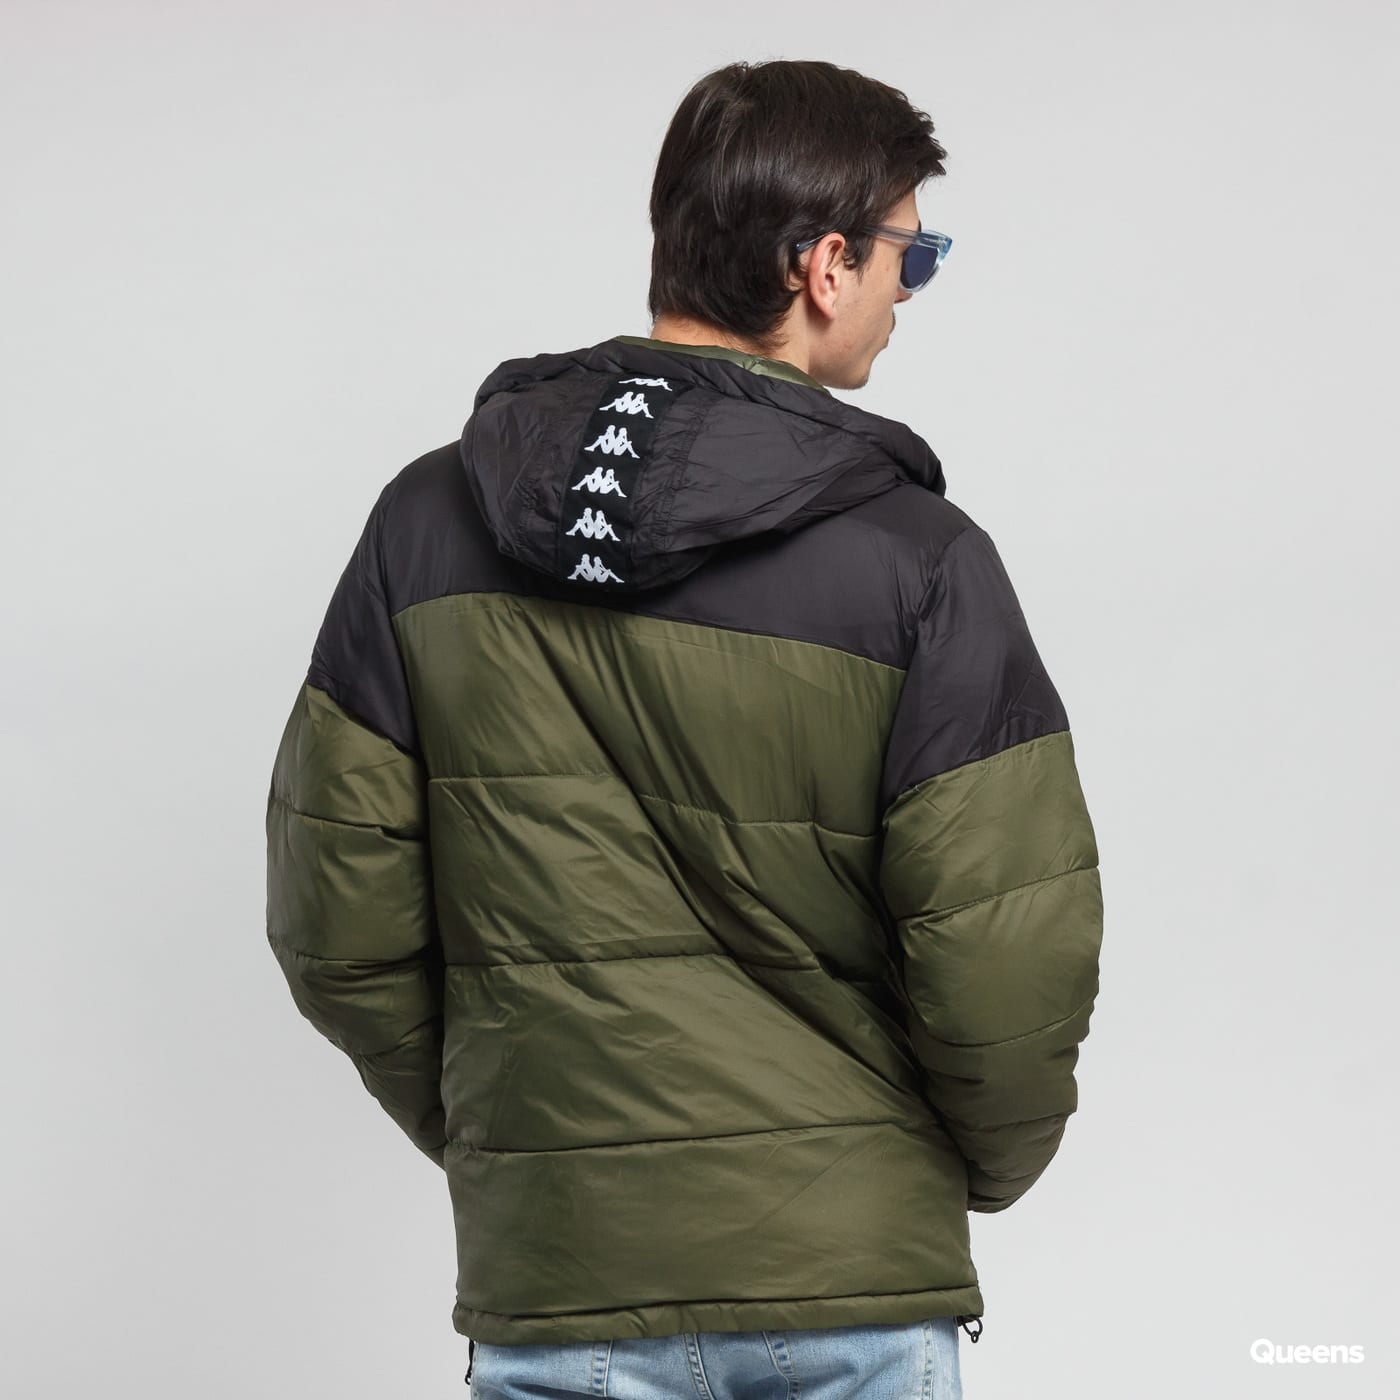 029472c7f1 Men Winter Jacket Kappa Banda Aochi olive / black (30316M0 916 ...